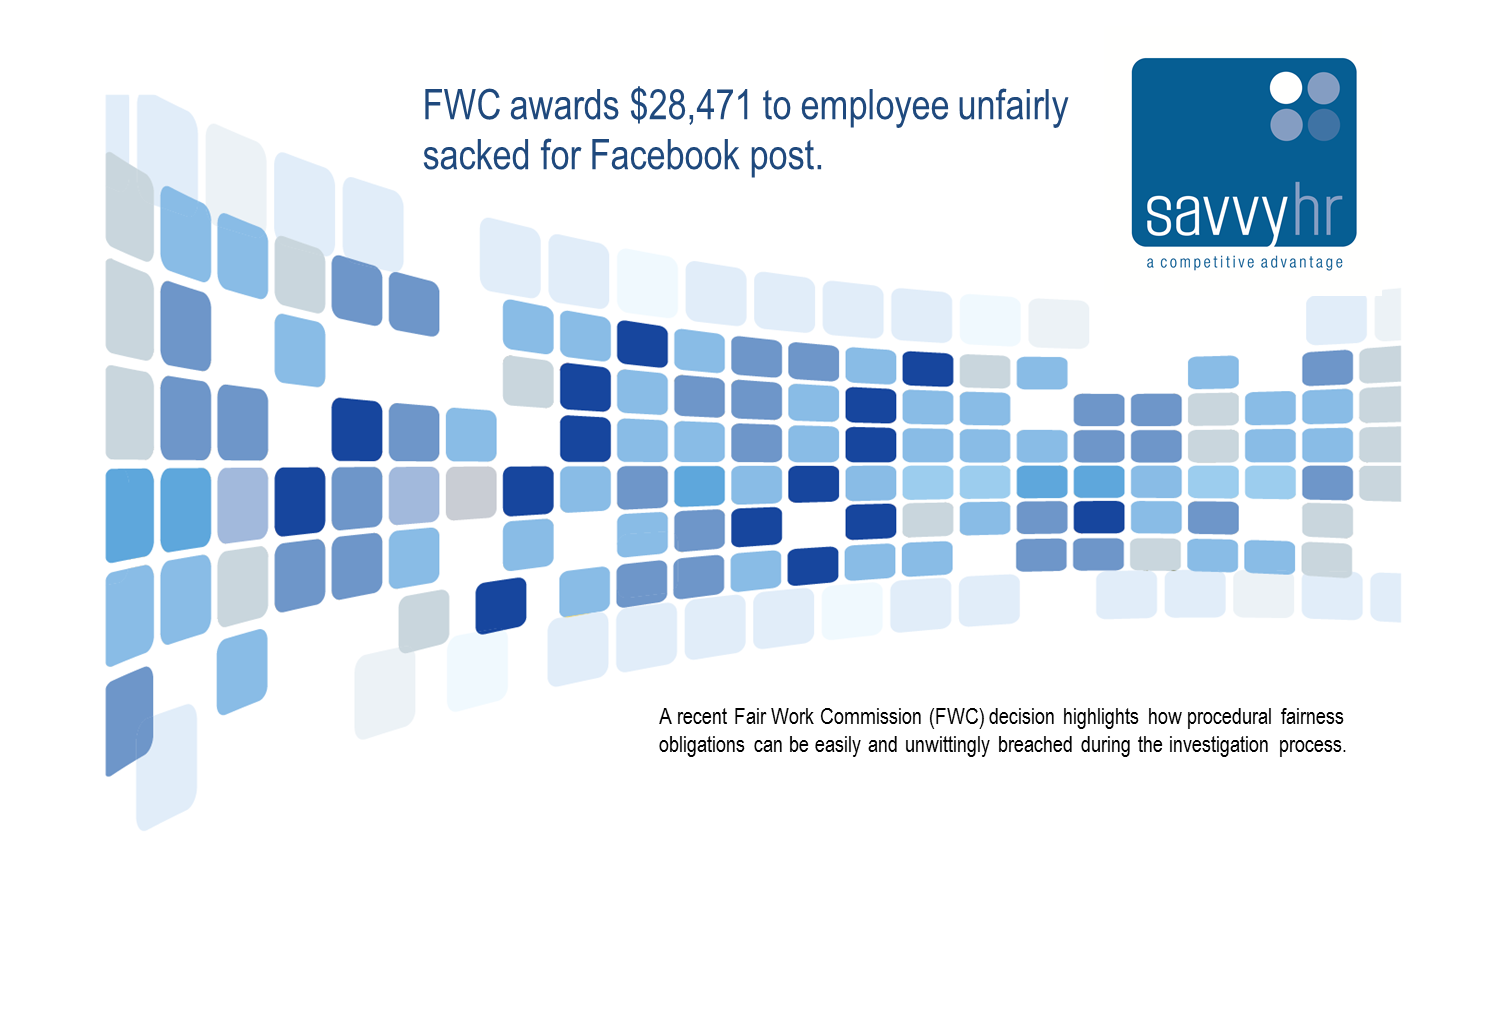 FWC awards 28471 to employee unfairly sacked for Facebook post